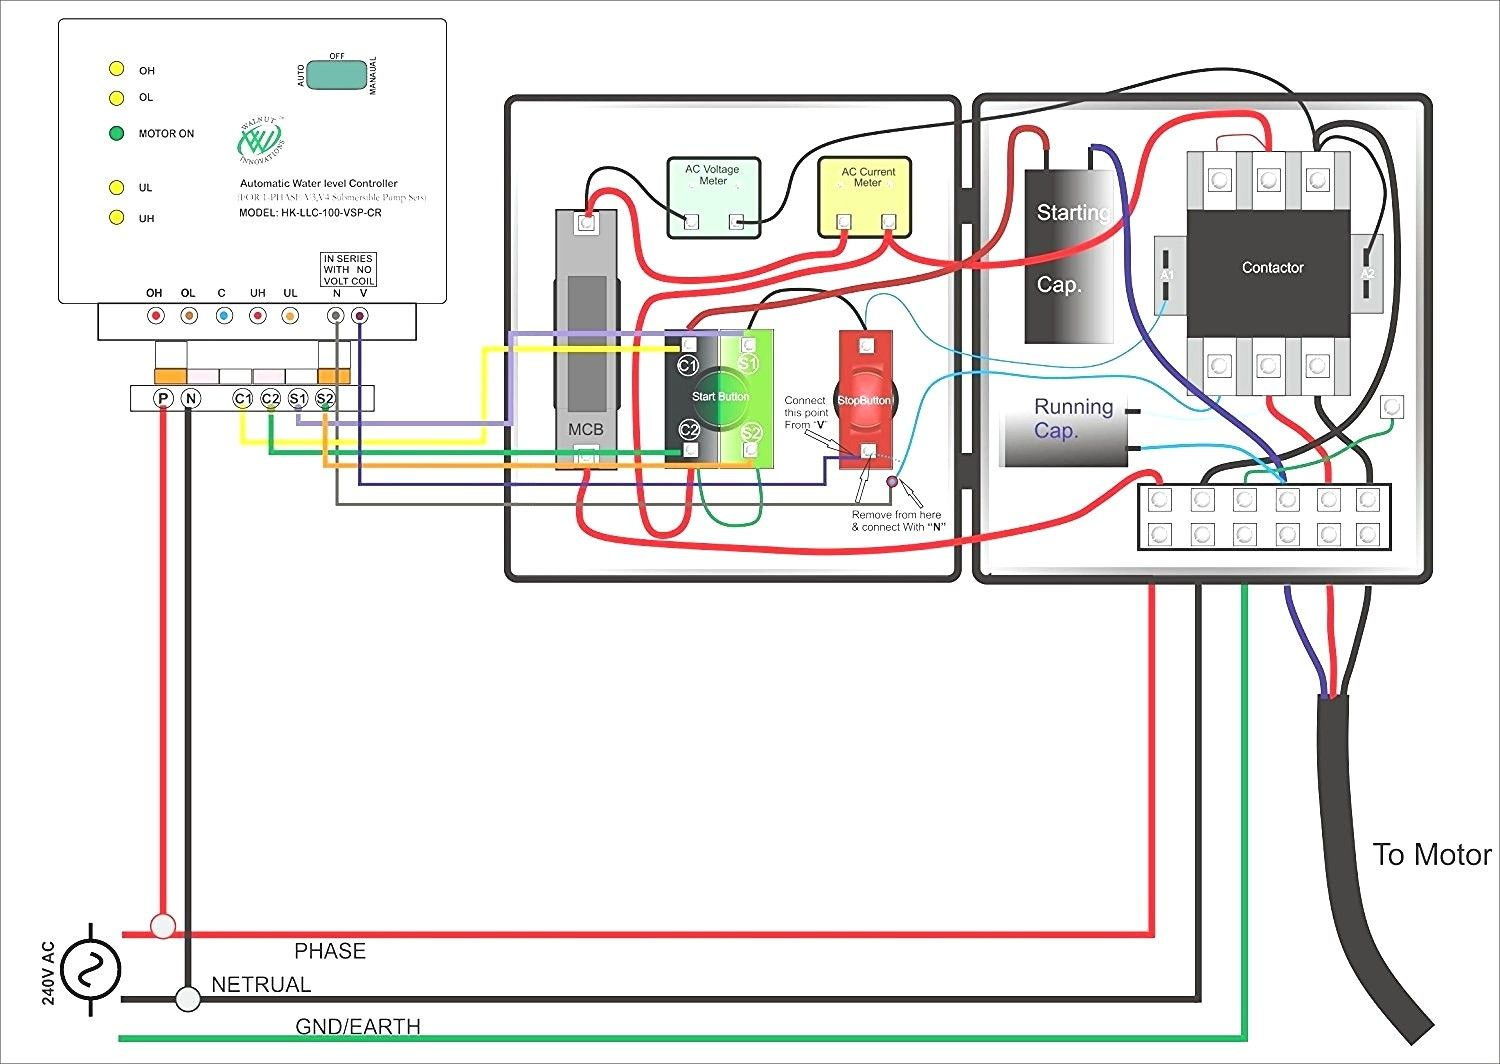 medium resolution of wiring control box for deep well pump wiring diagram view franklin electric well pump control box wiring diagram pump control box wiring diagram